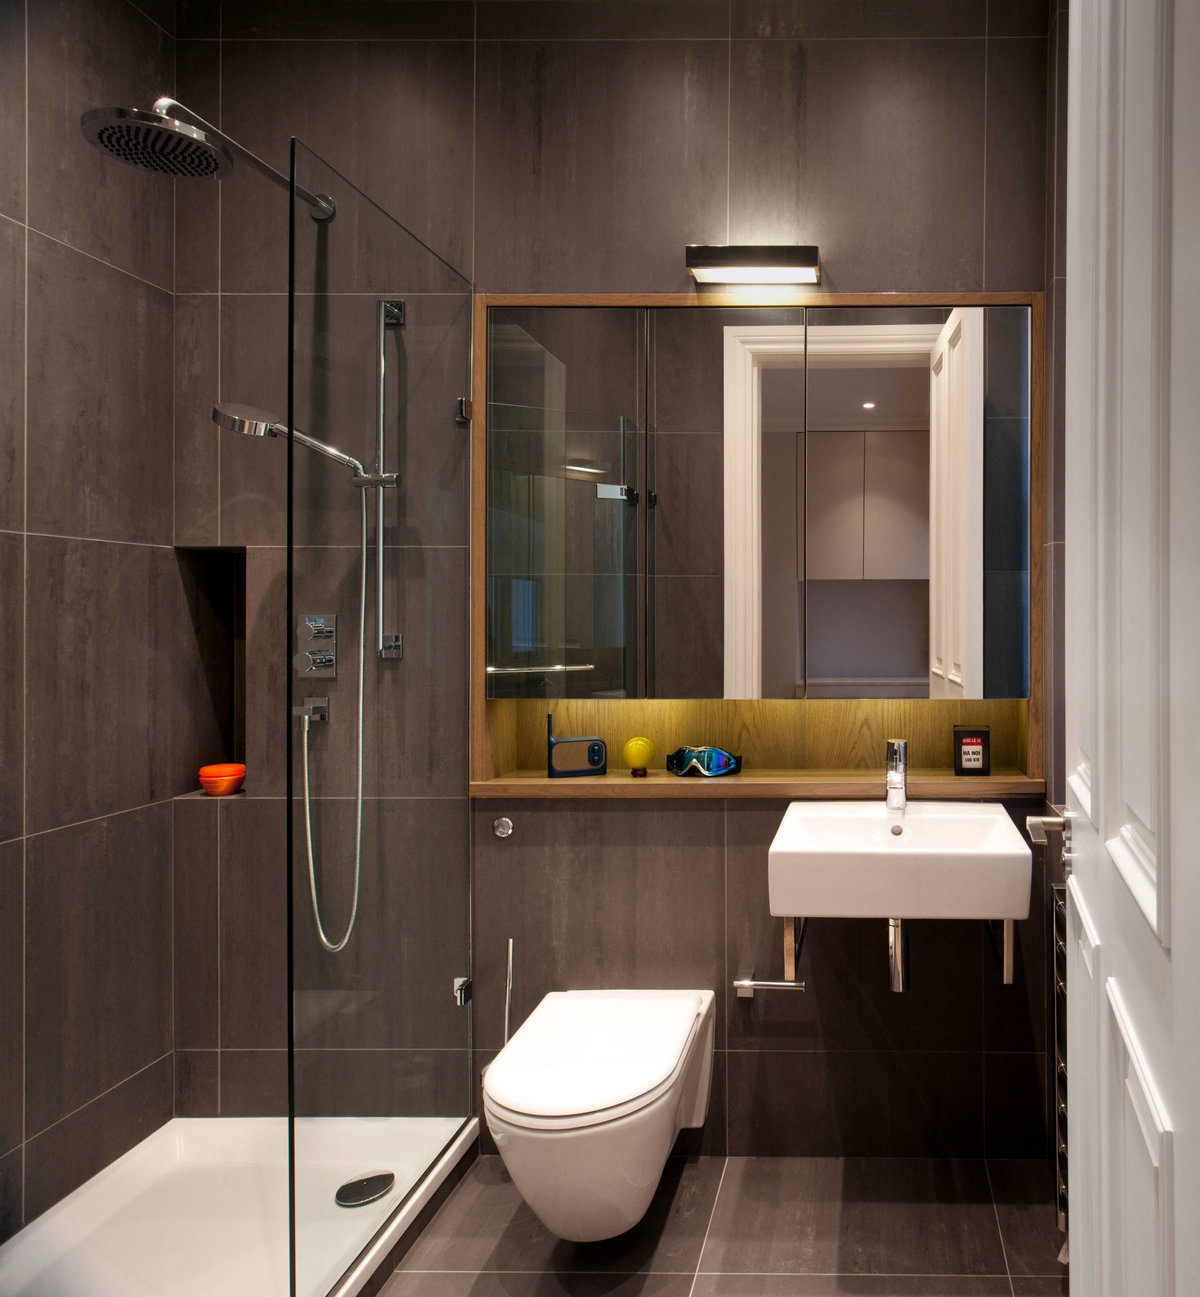 Small Bathroom Renovations amp Designs A lucky minority of the population has the pleasure and luxury of a large bathroom with enough room for double vanity basins